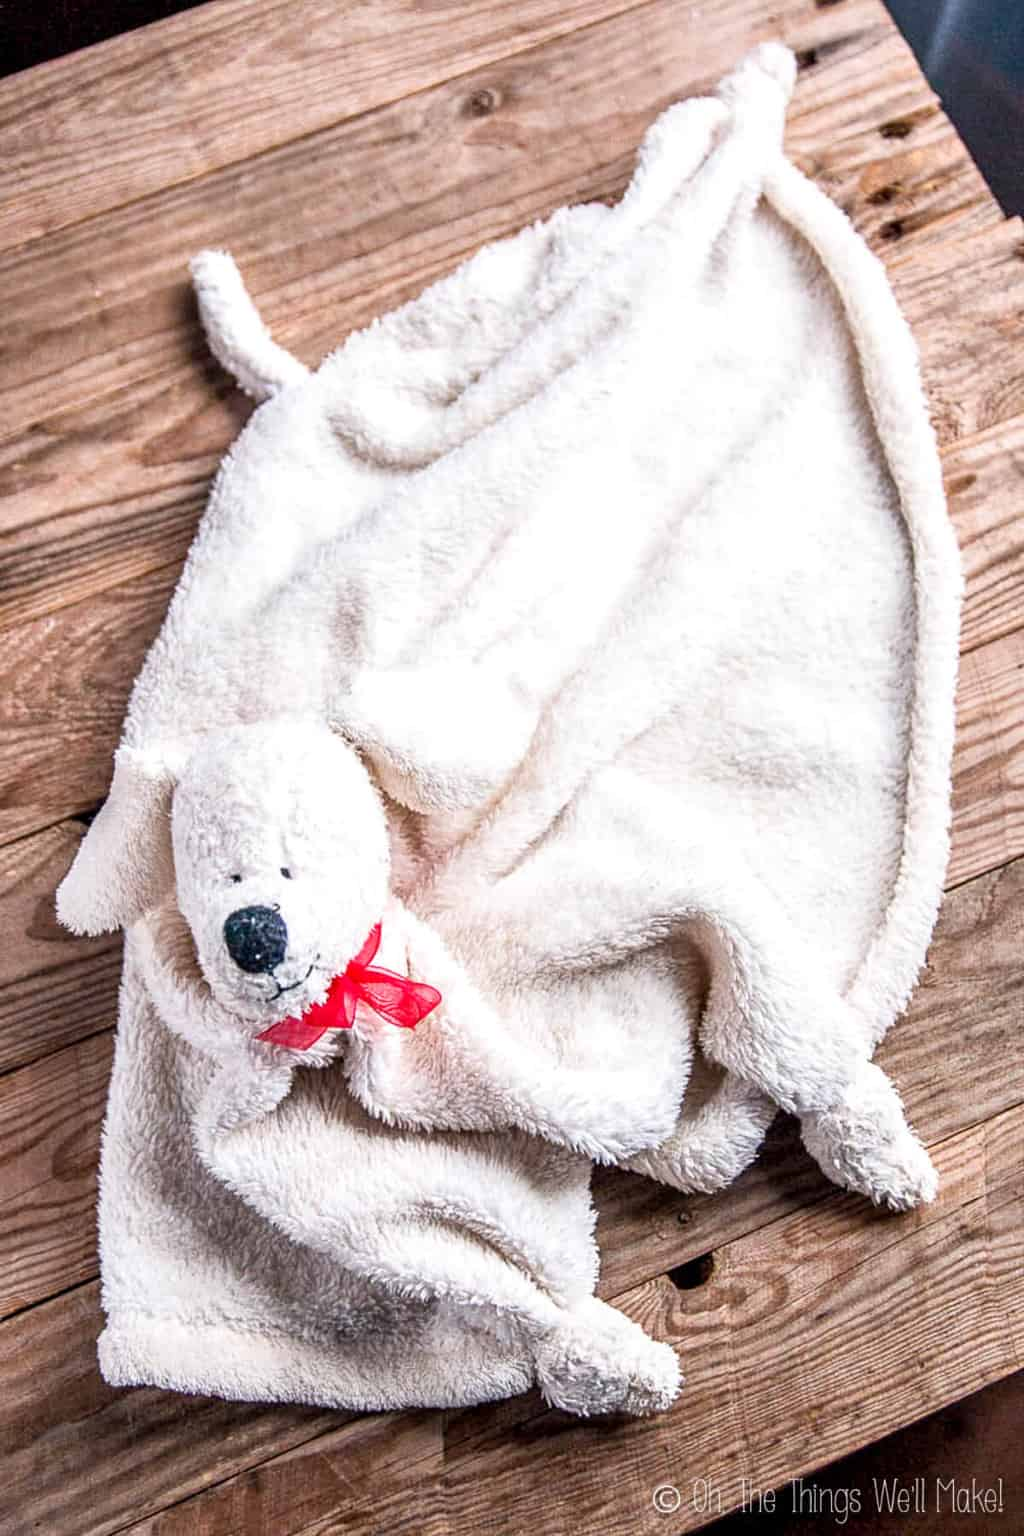 A white fluffy blanket with stuffed animal puppy head spread out on a wooden surface that shows off the head, tail, and corners of the blanket.